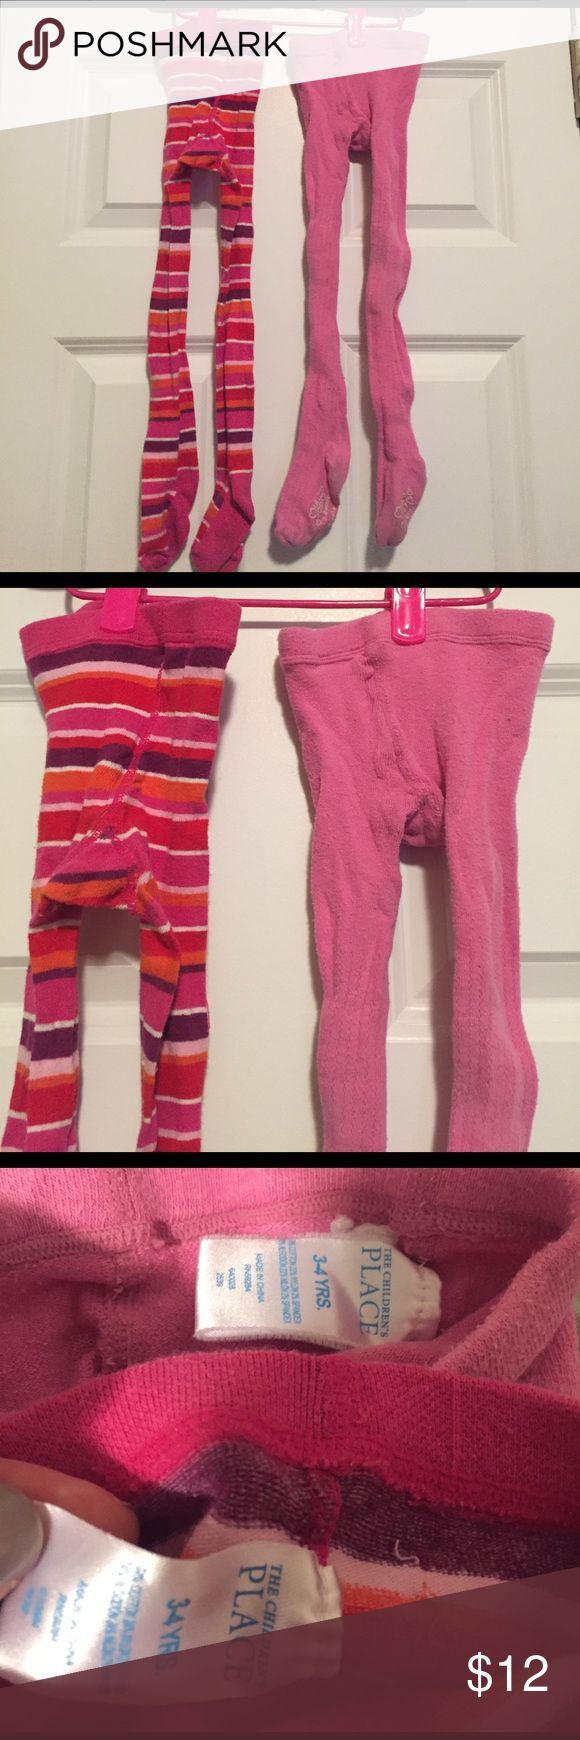 Lot of 2 Winter Tights- Children's Place Lot of 2 Children's Place winter tights- stripe and pink cable. Size 3-4. Children's Place Accessories Socks & Tights